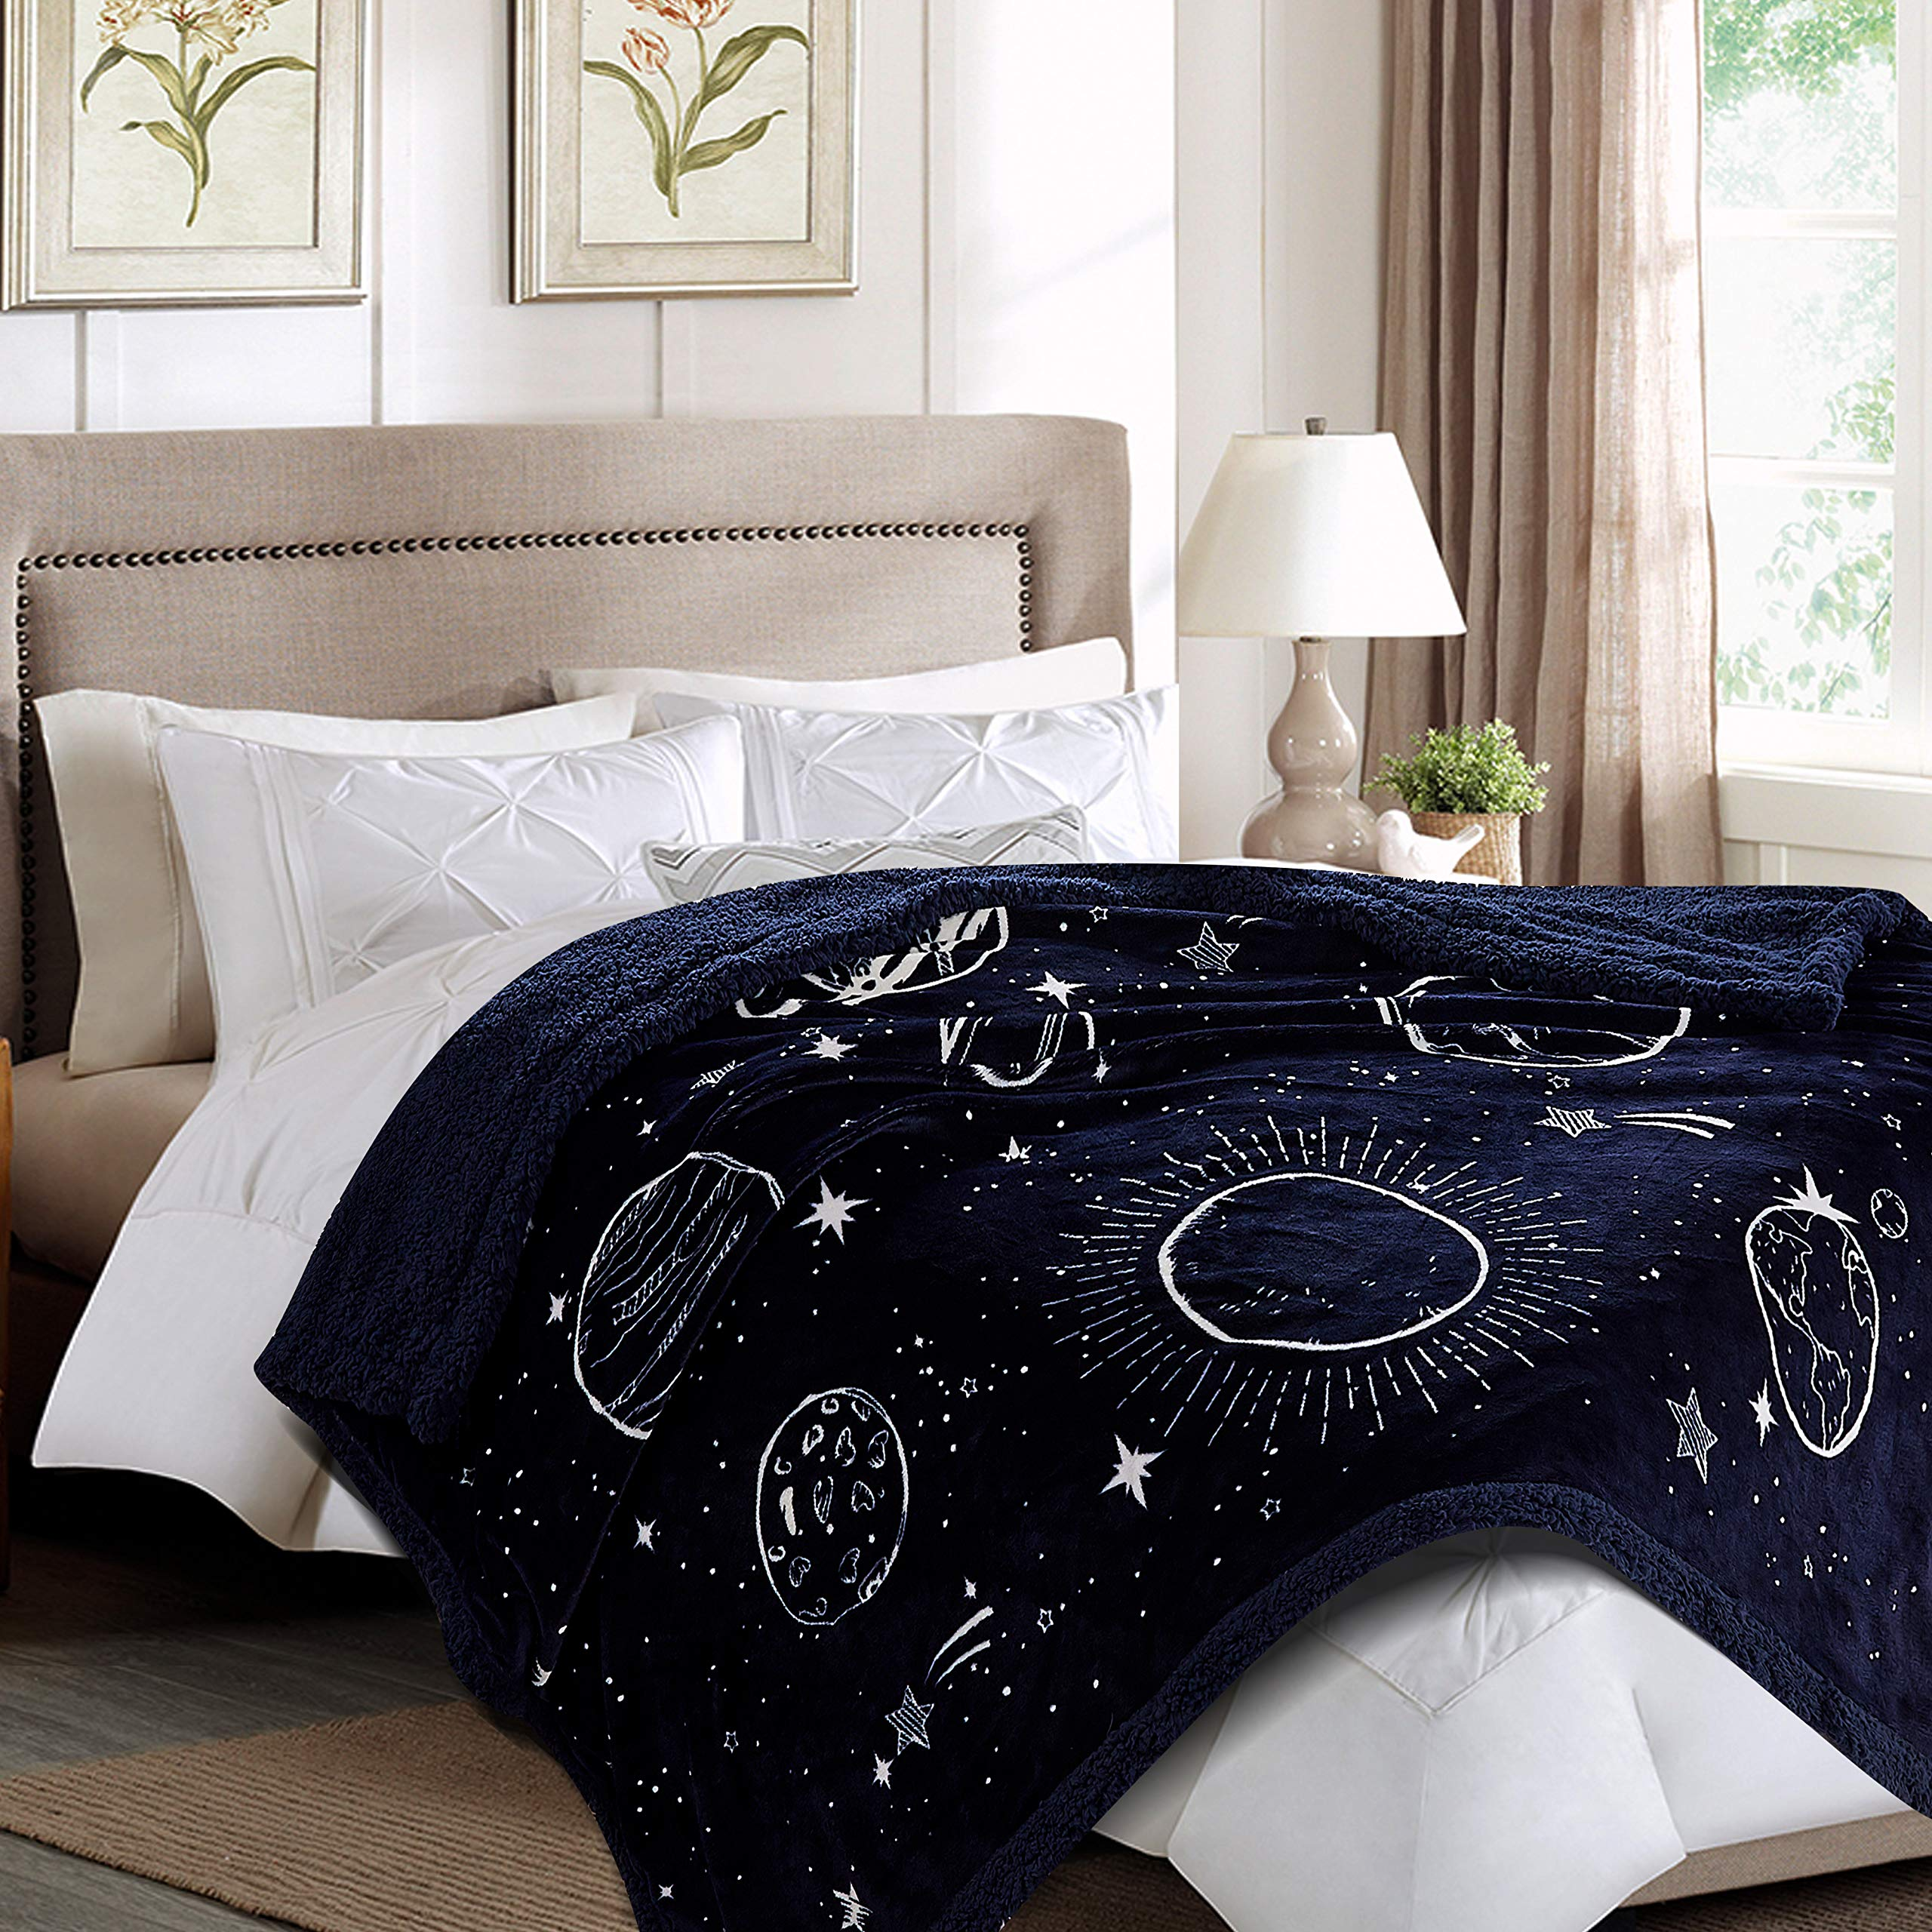 Chanasya Super Soft Solar System Galaxy Star Space Print Throw Blanket| Featuring All Nine Planets Orbiting The Sun Including Pluto Dark Navy Charcoal Reversible Blanket for Bed Couch Chair -DarkNavy by Chanasya (Image #3)